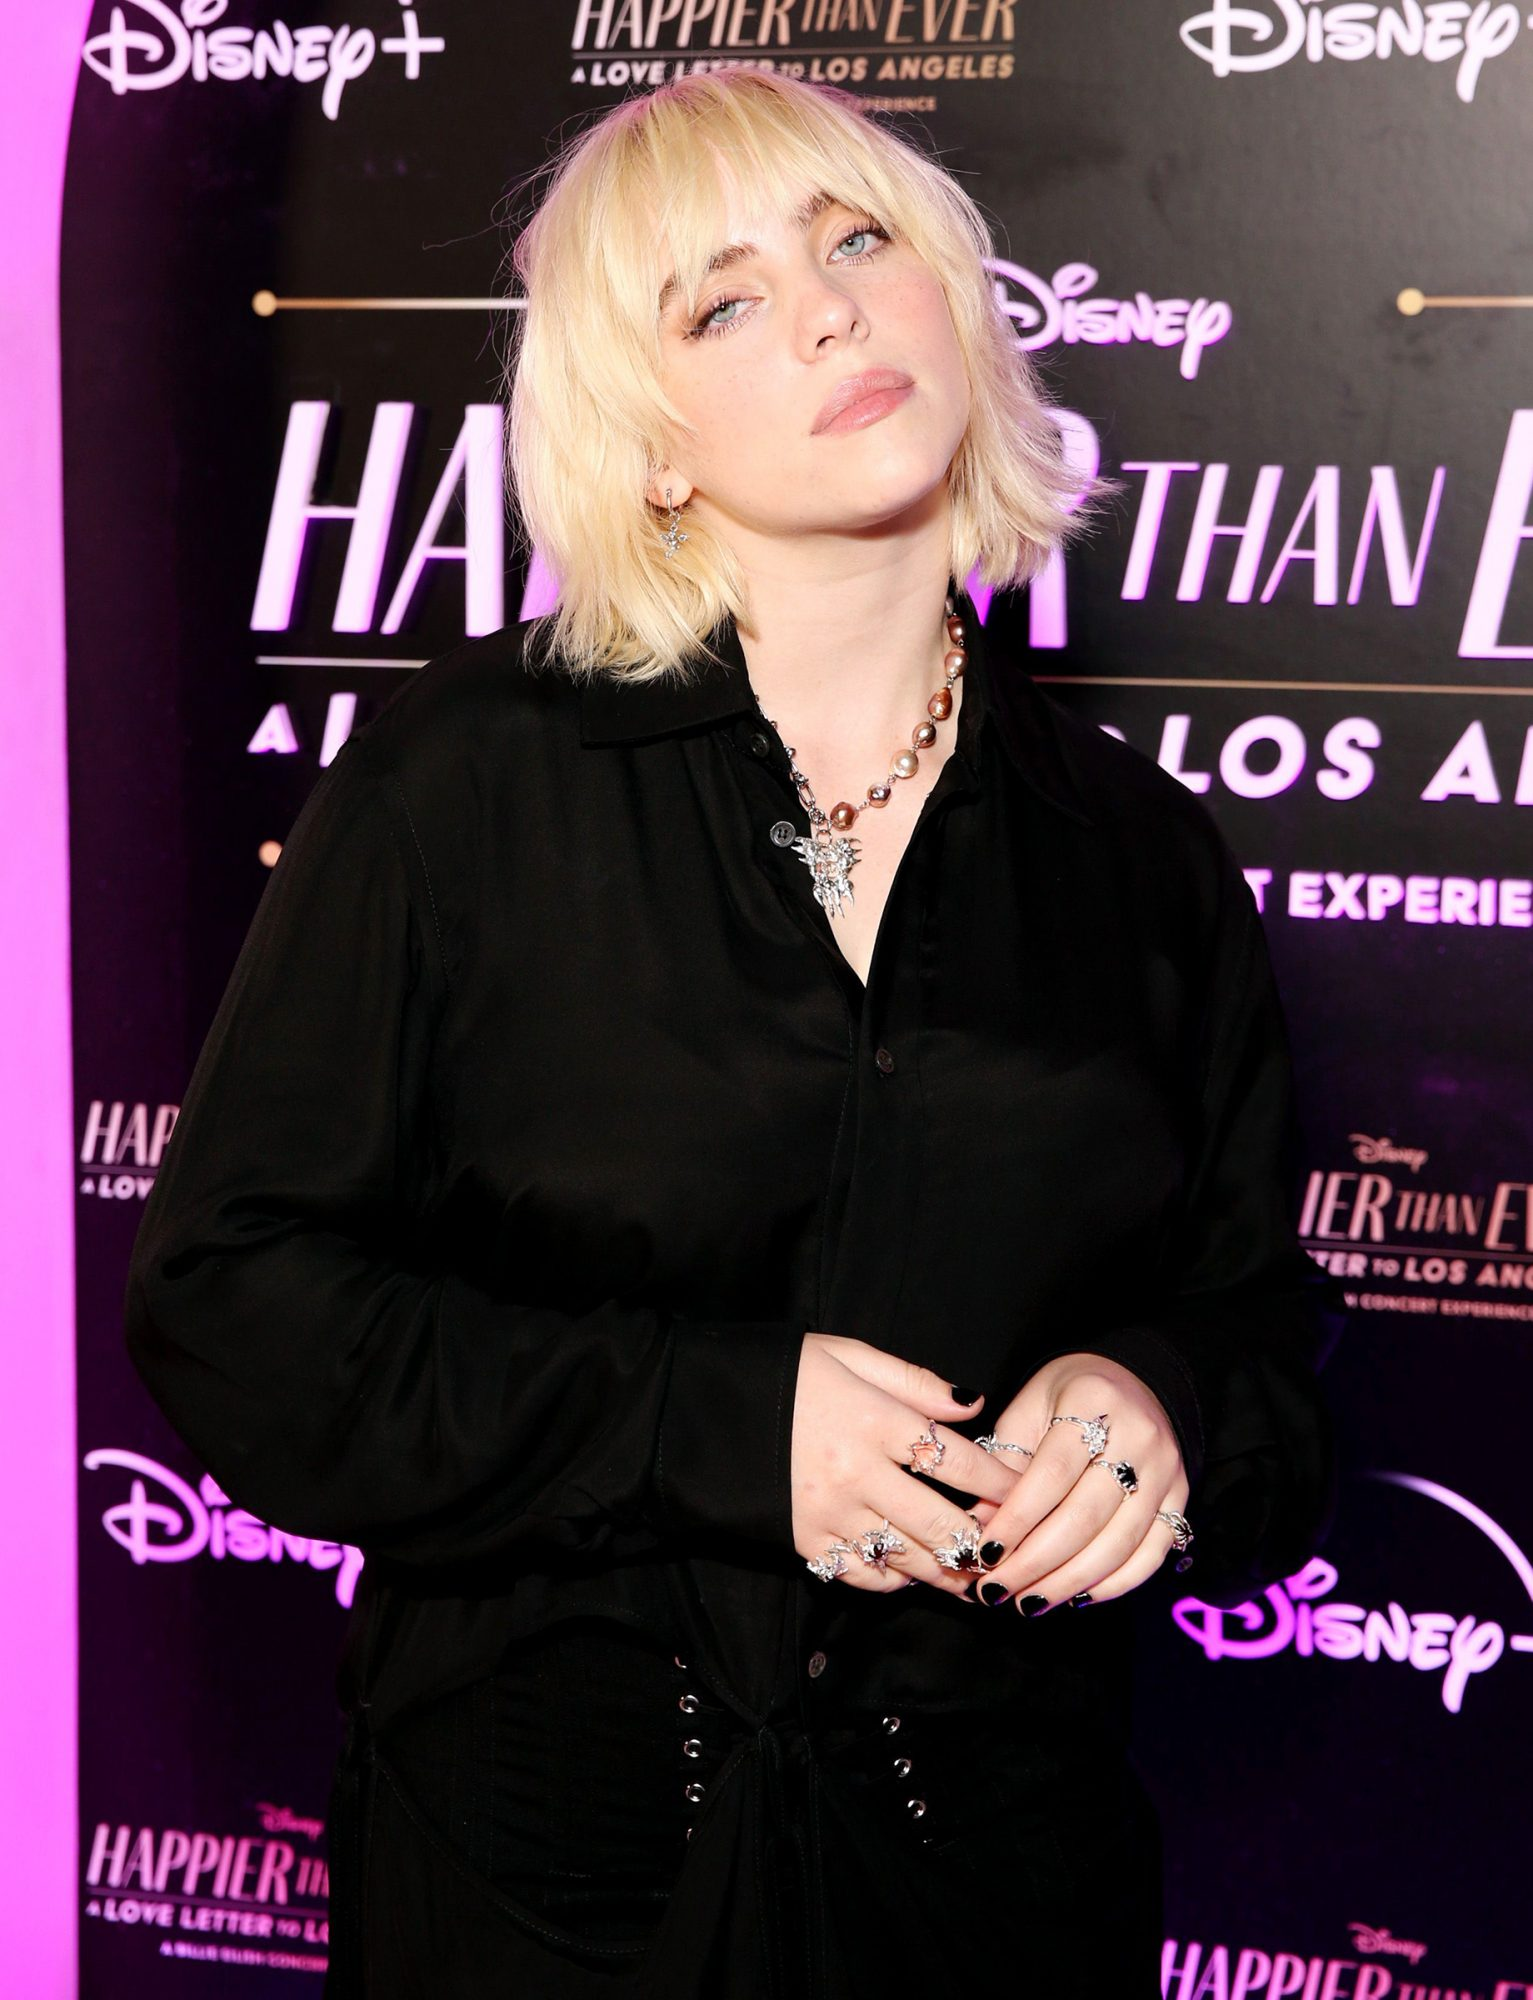 """Billie Eilish attends """"Happier Than Ever: A Love Letter To Los Angeles"""" Worldwide Premiere at The Grove on August 30, 2021 in Los Angeles, California"""